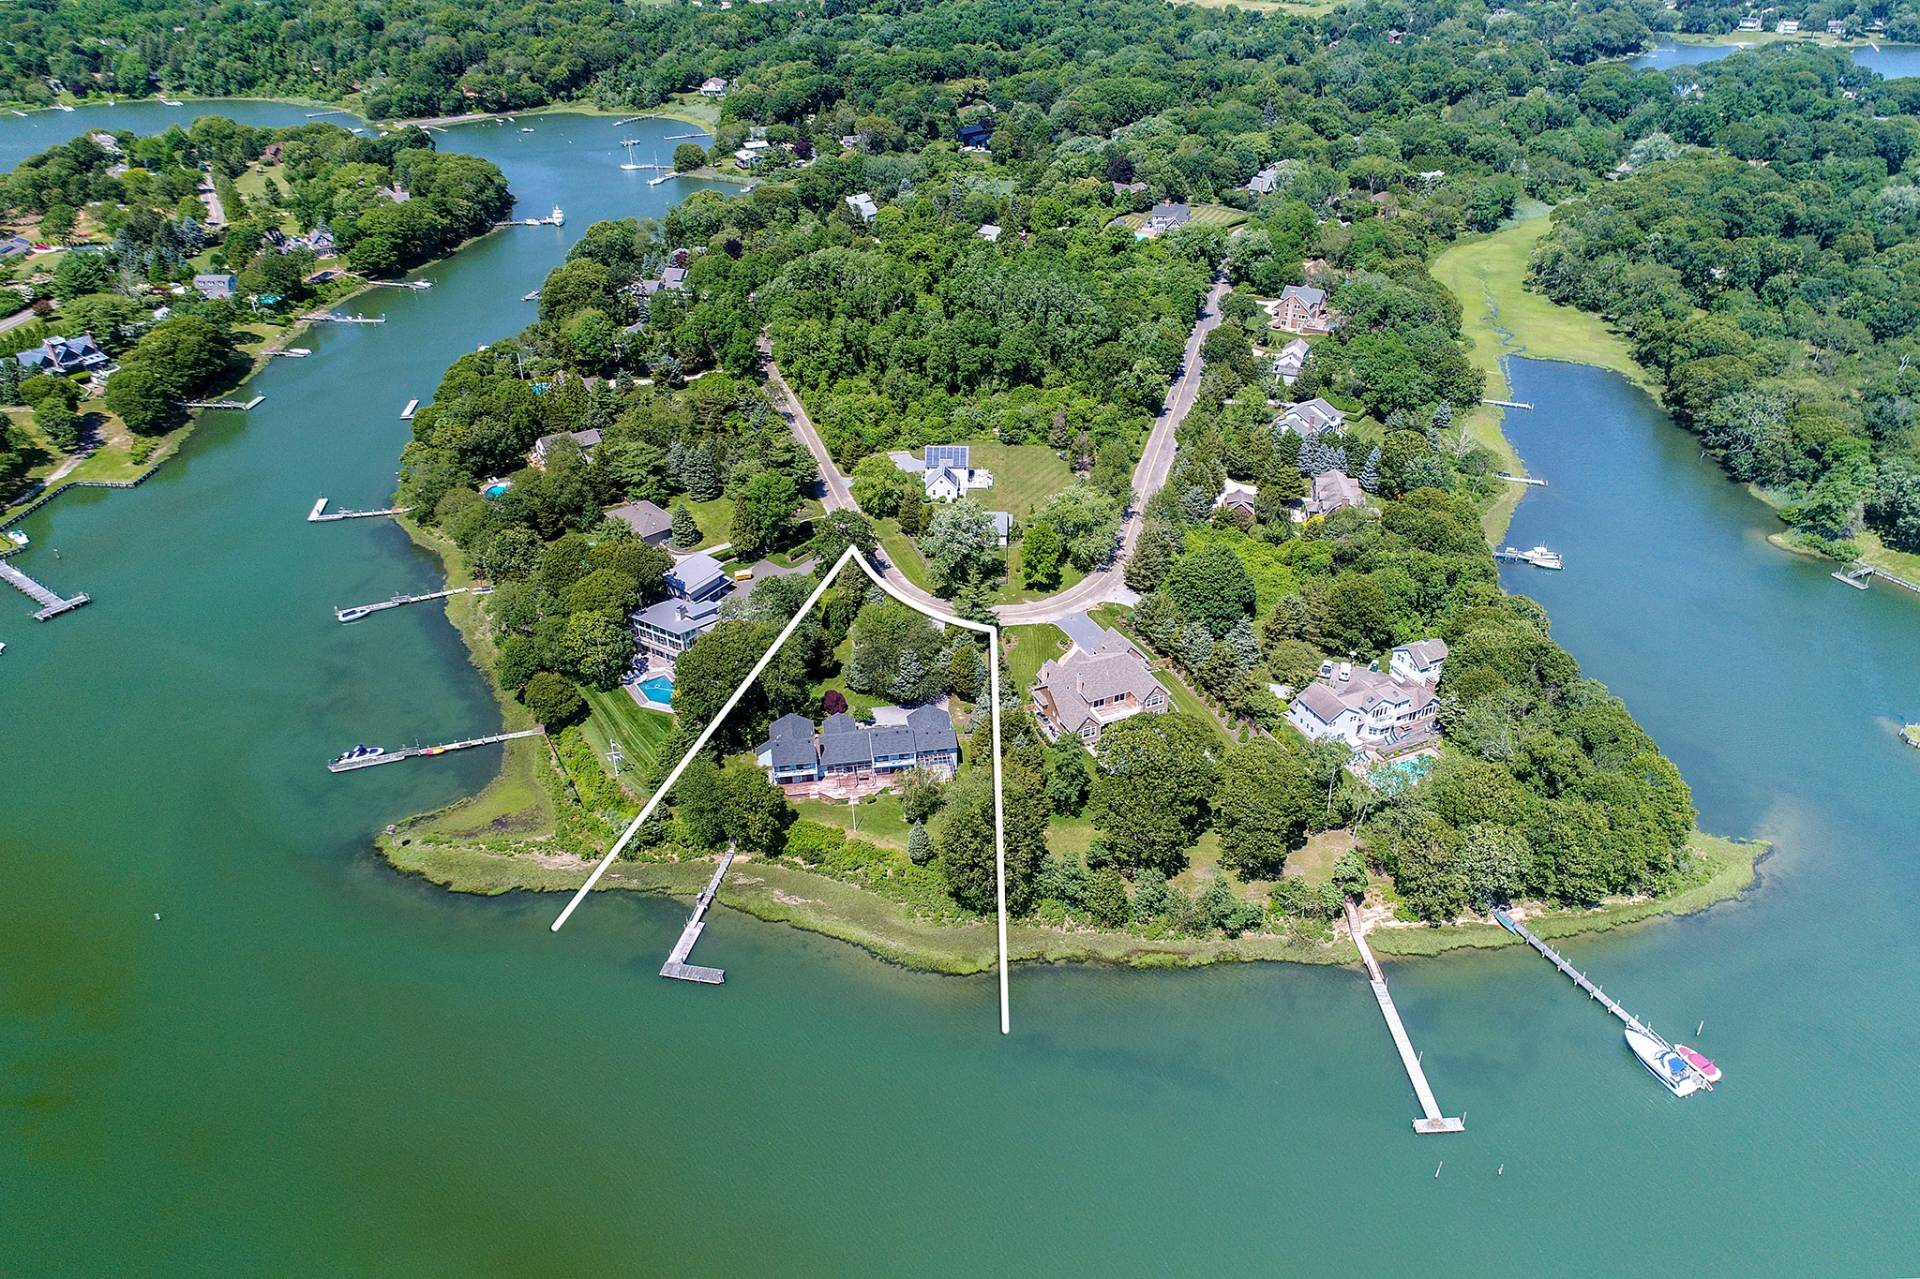 独户住宅 为 销售 在 Shelter Island Pristine Waterfront With Dock 26 Margarets Drive, 谢尔顿岛, 纽约州